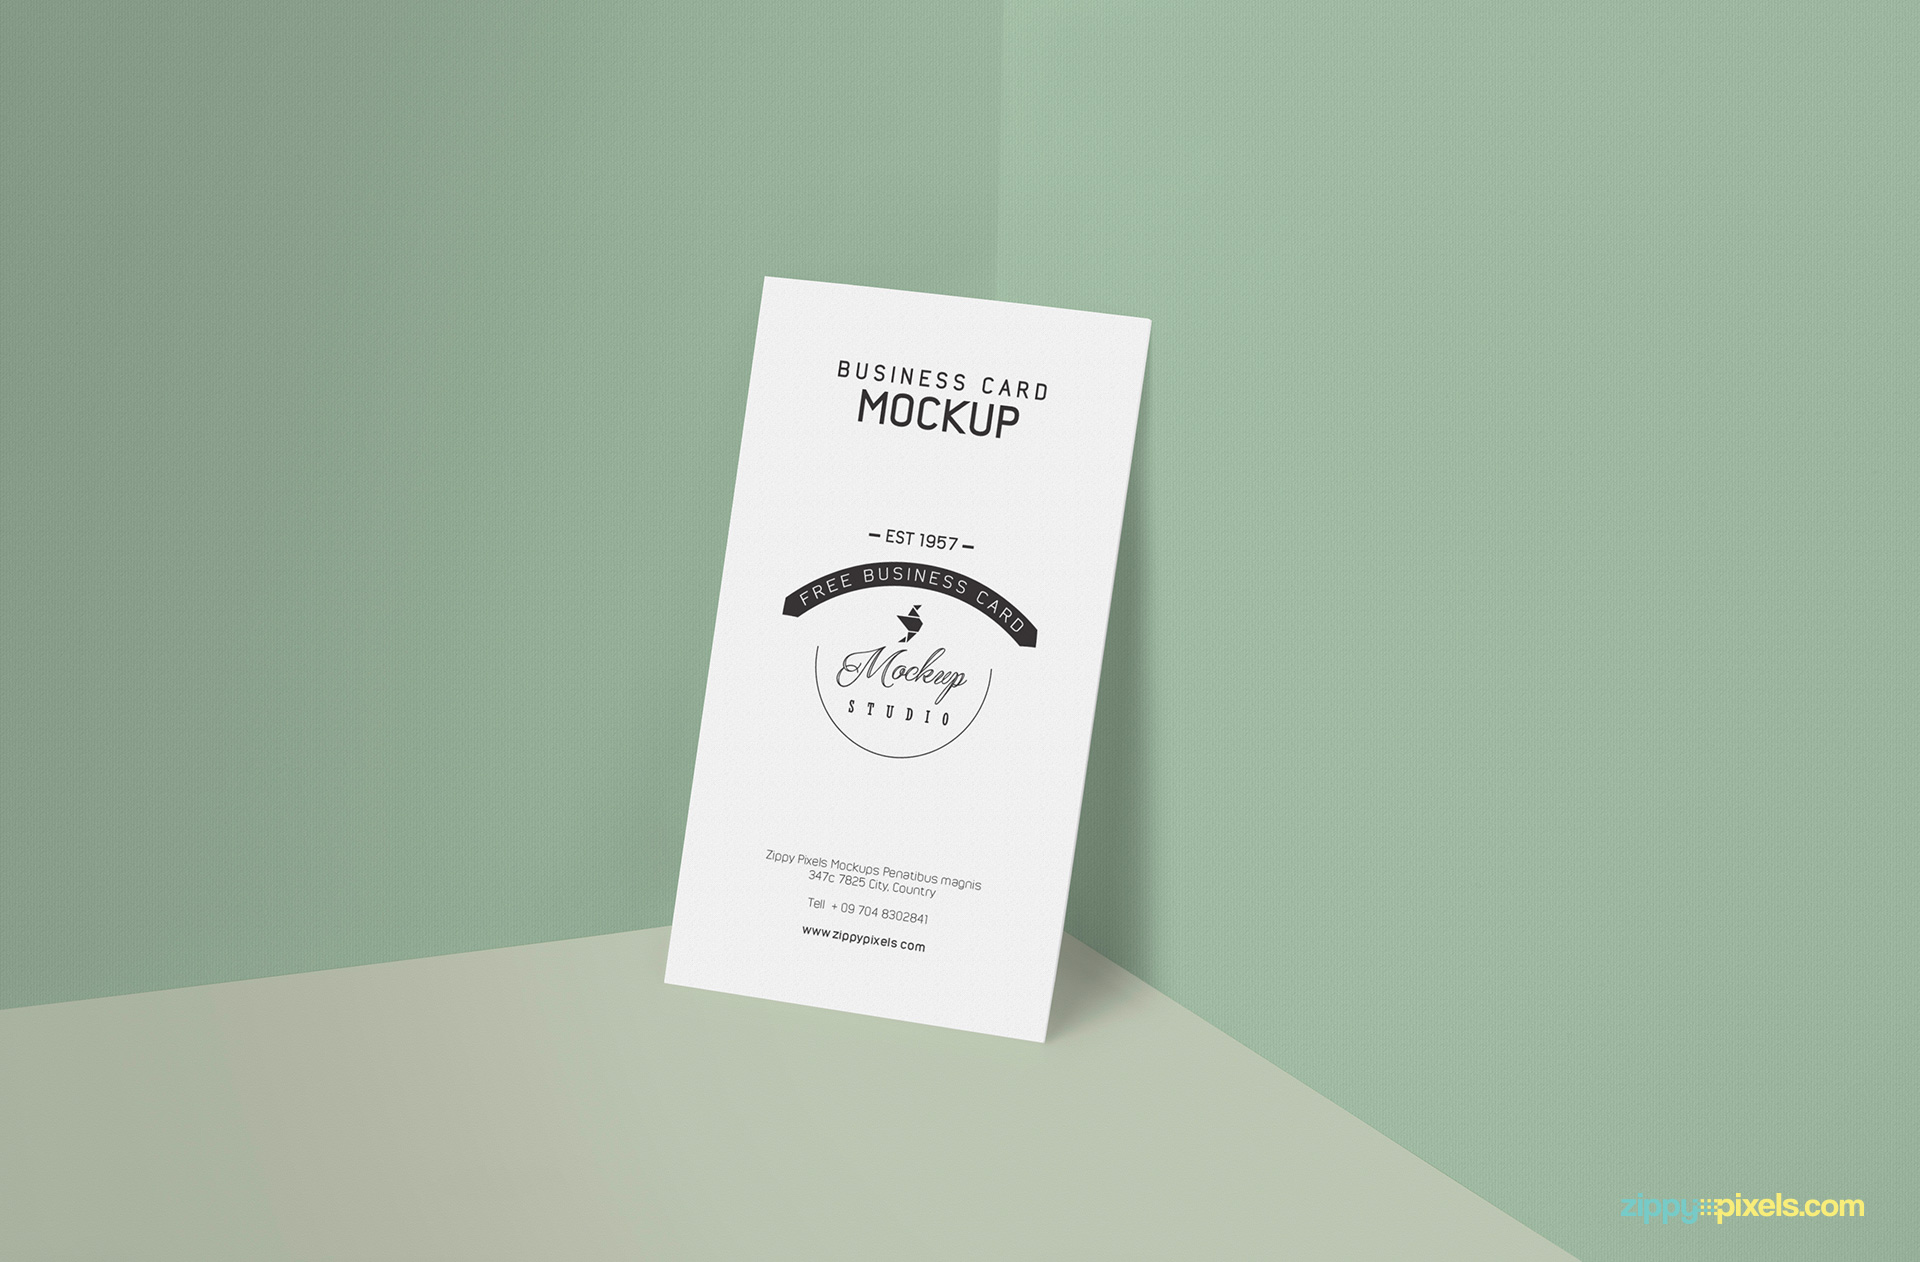 Free Business Card Mockup | ZippyPixels